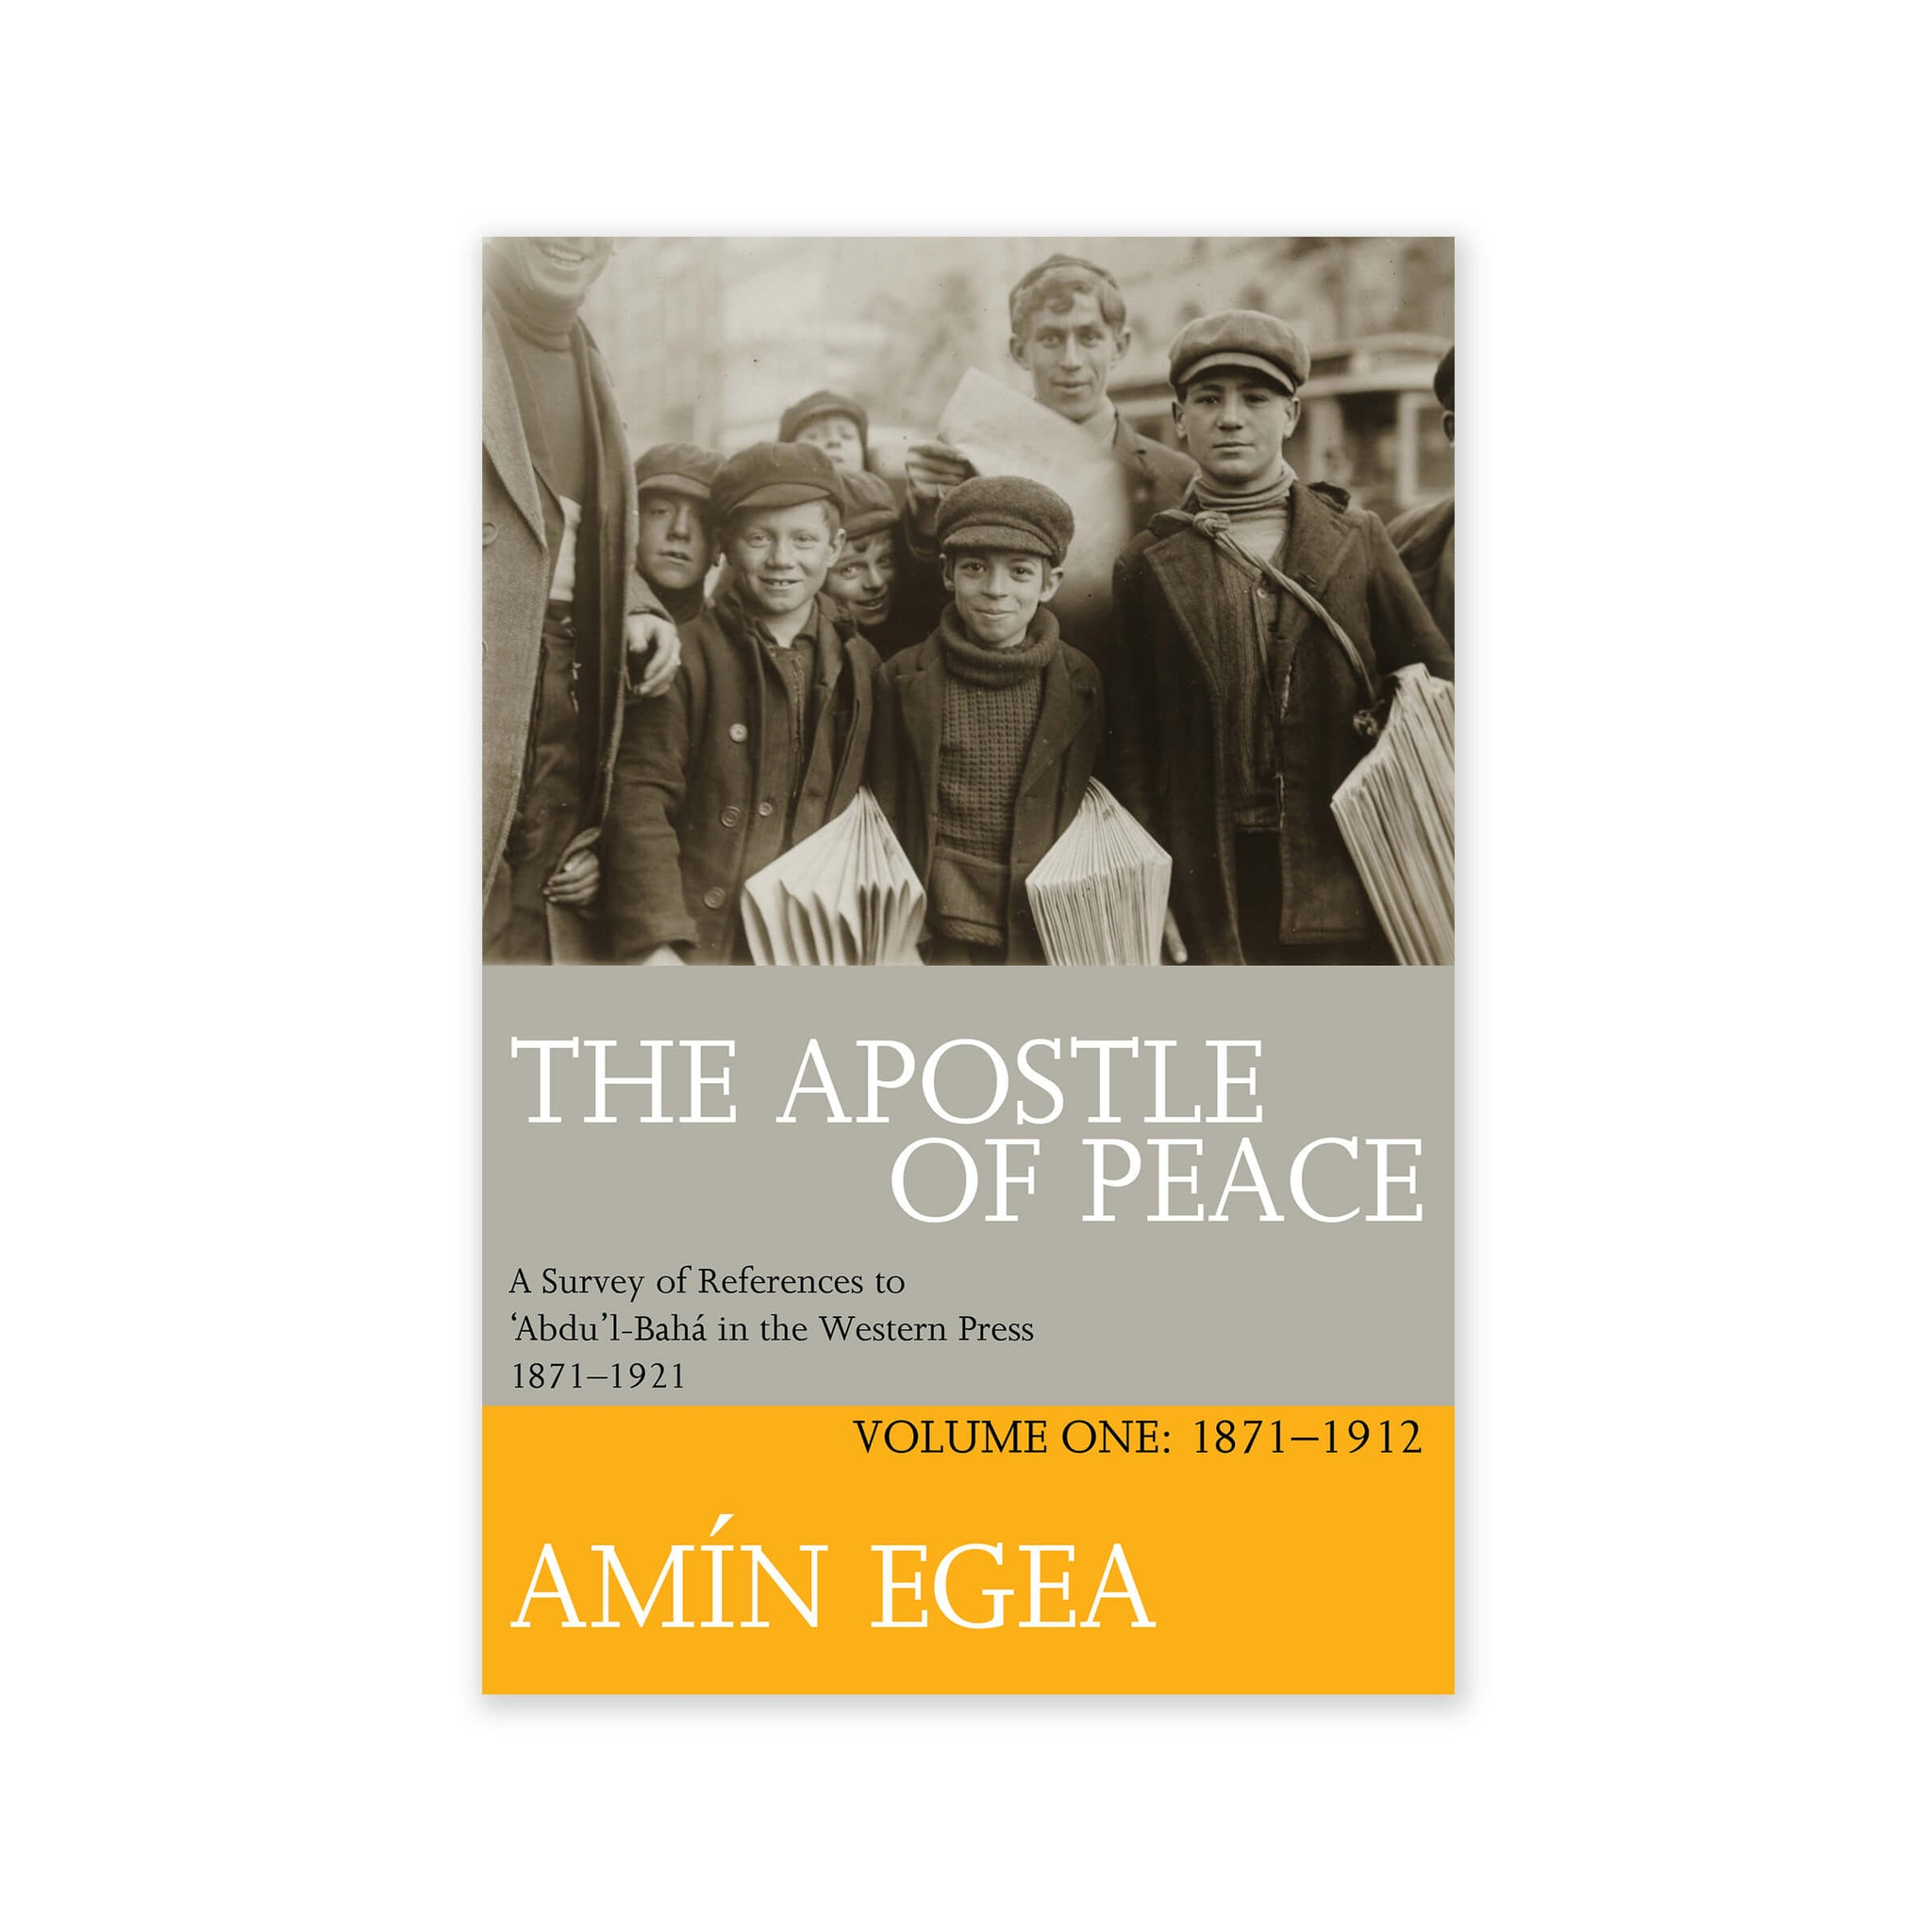 Apostle of Peace, Volume 1 - References to Abdu'l-Baha in the Western Press 1871-1911